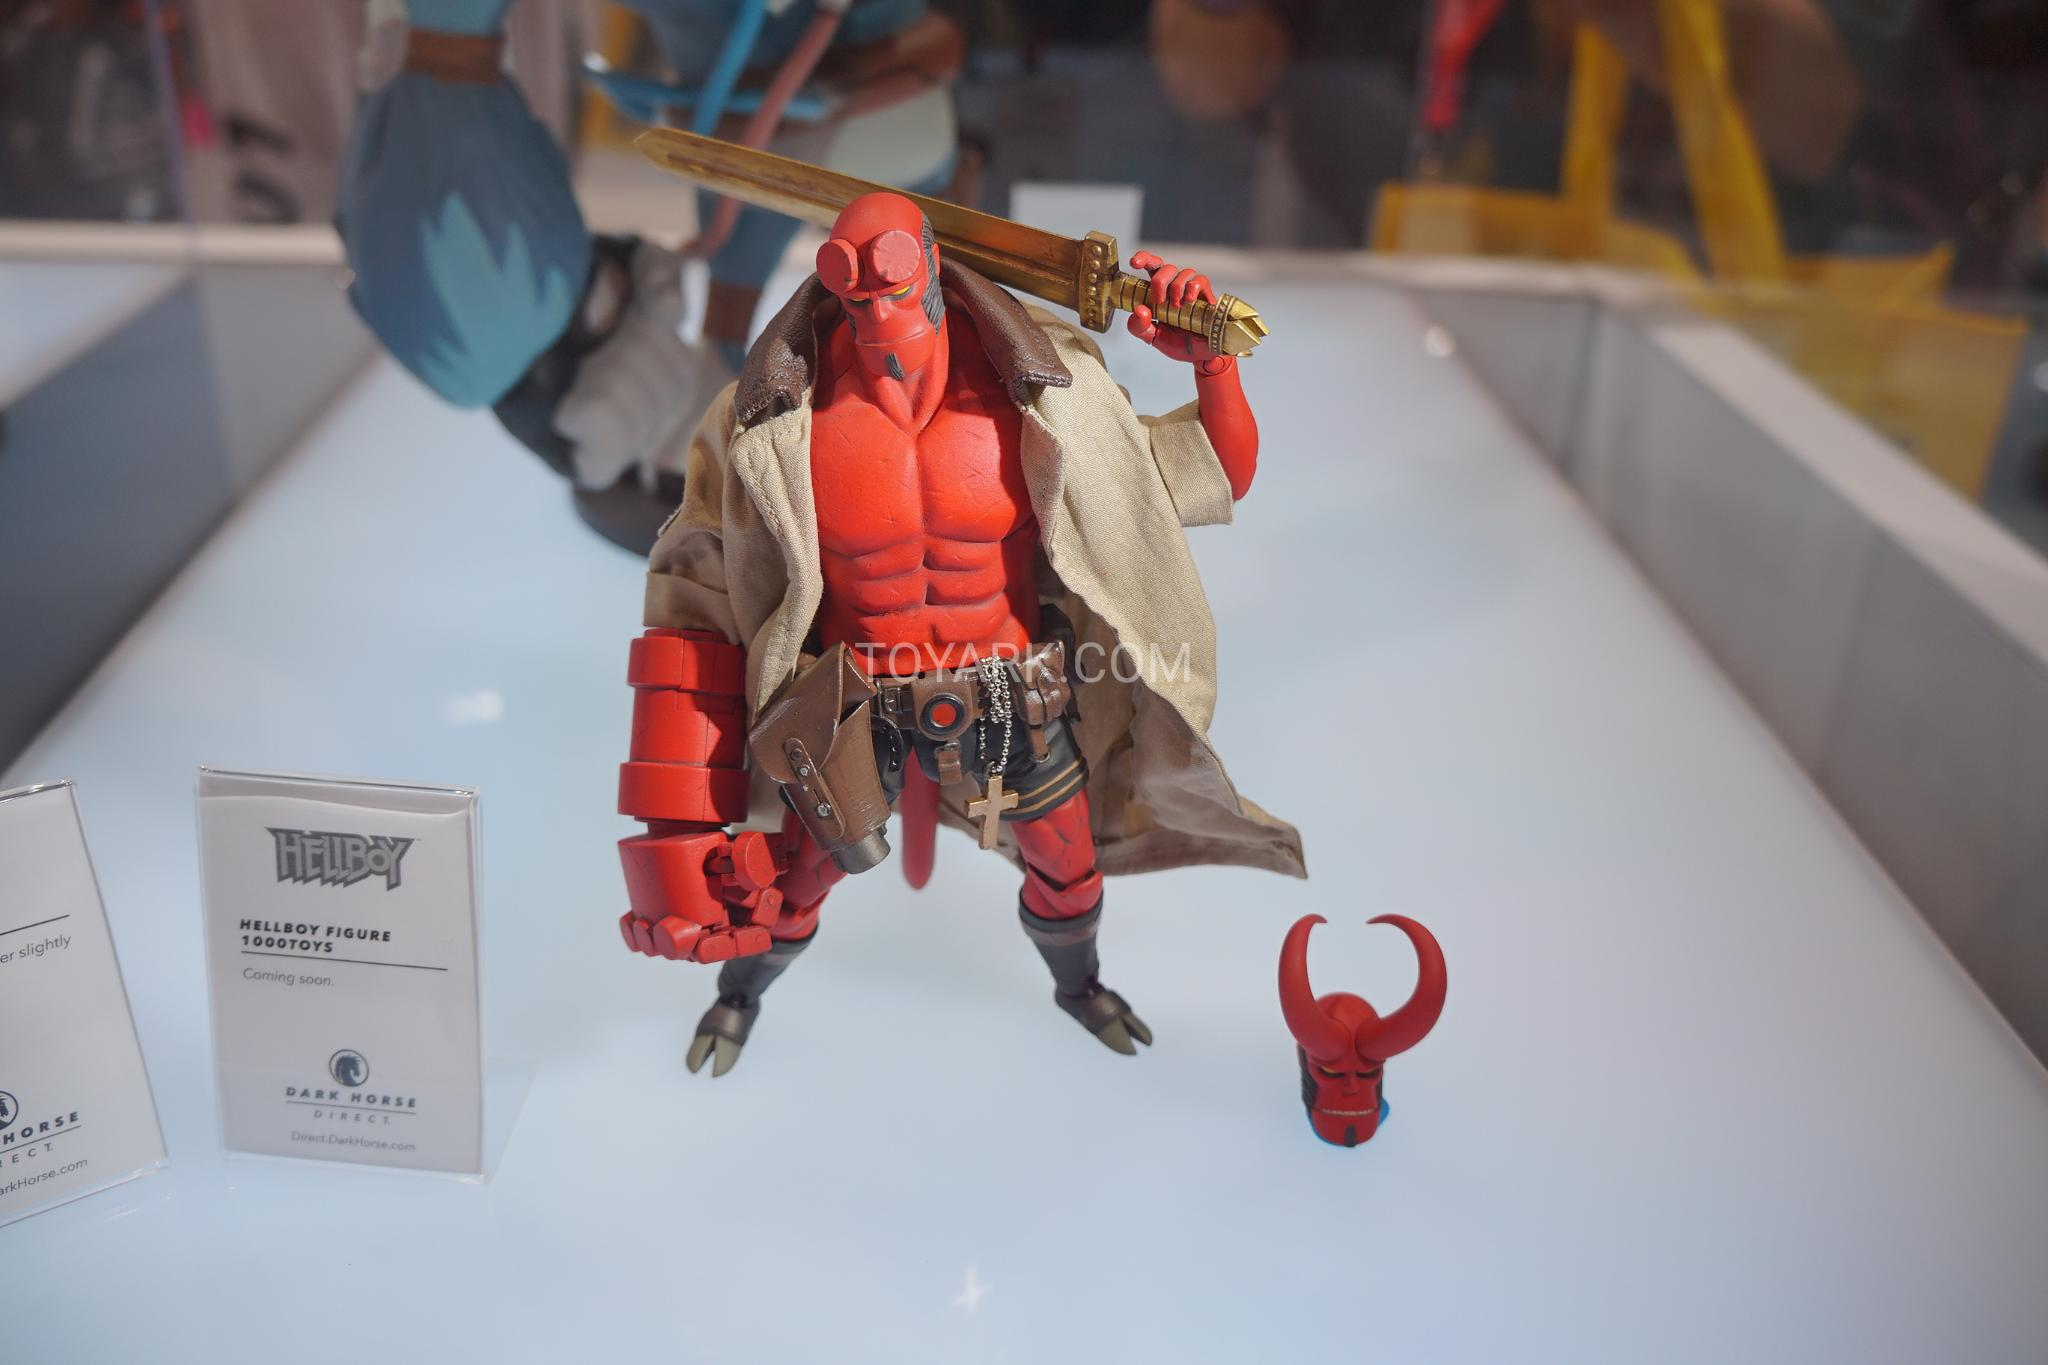 Sdcc 2018 Dark Horse Direct 1 12th Scale Hellboy Action Figure Funko Pop Comics In Suit Meanwhile Here Are Photos From Toyark The Displays